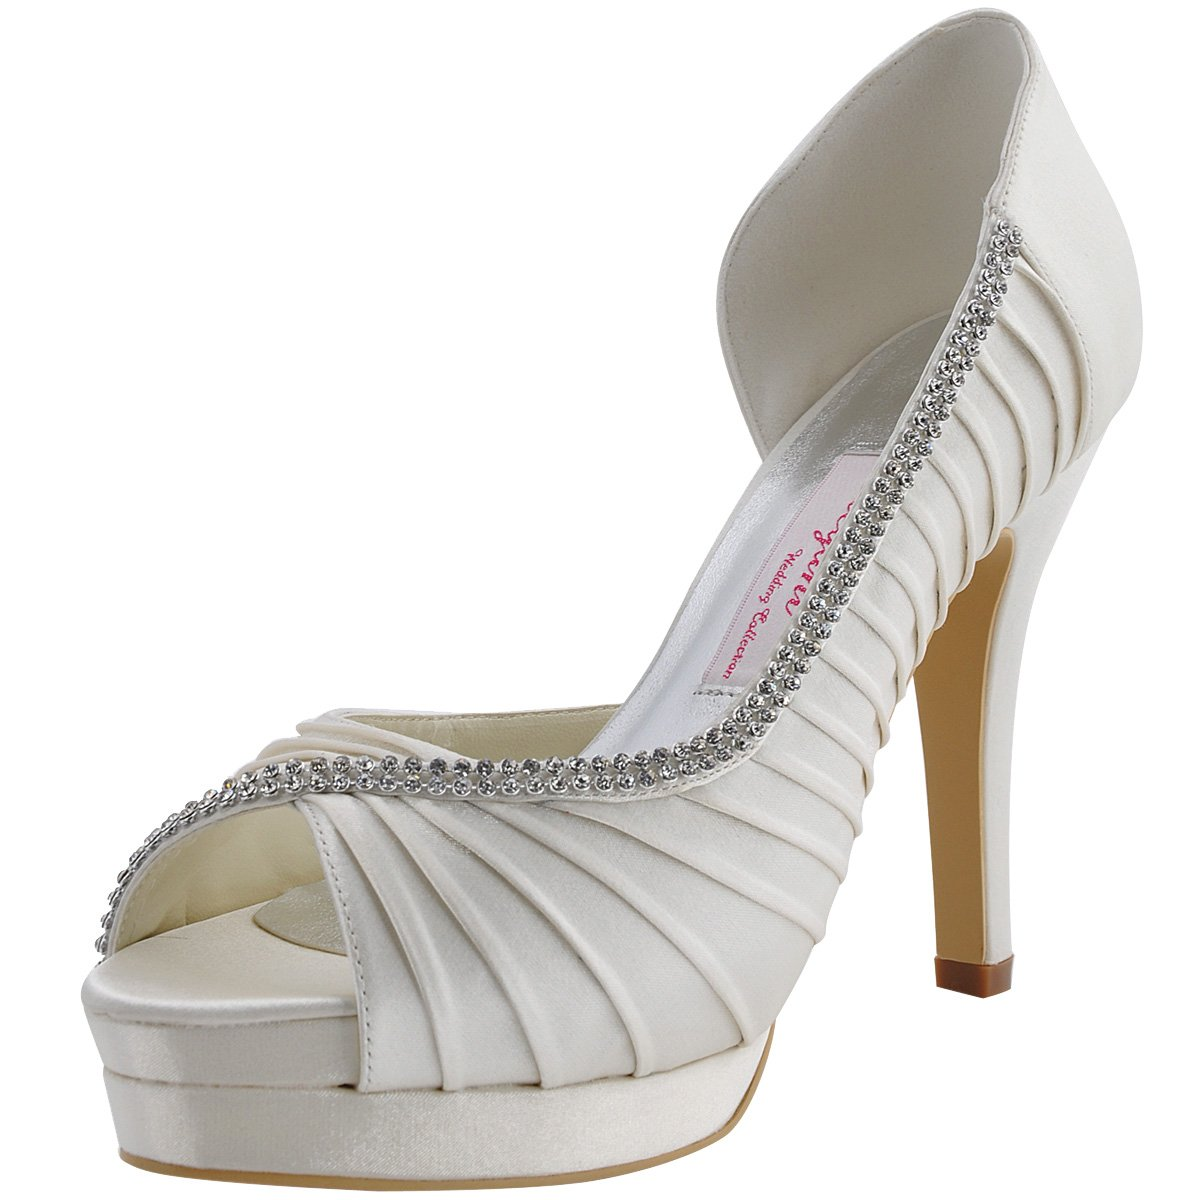 ElegantPark EP11064 Women High Heel Pumps Platform Peep Toe D'orsay Pleated Satin Bridal Wedding Shoes Ivory US 10